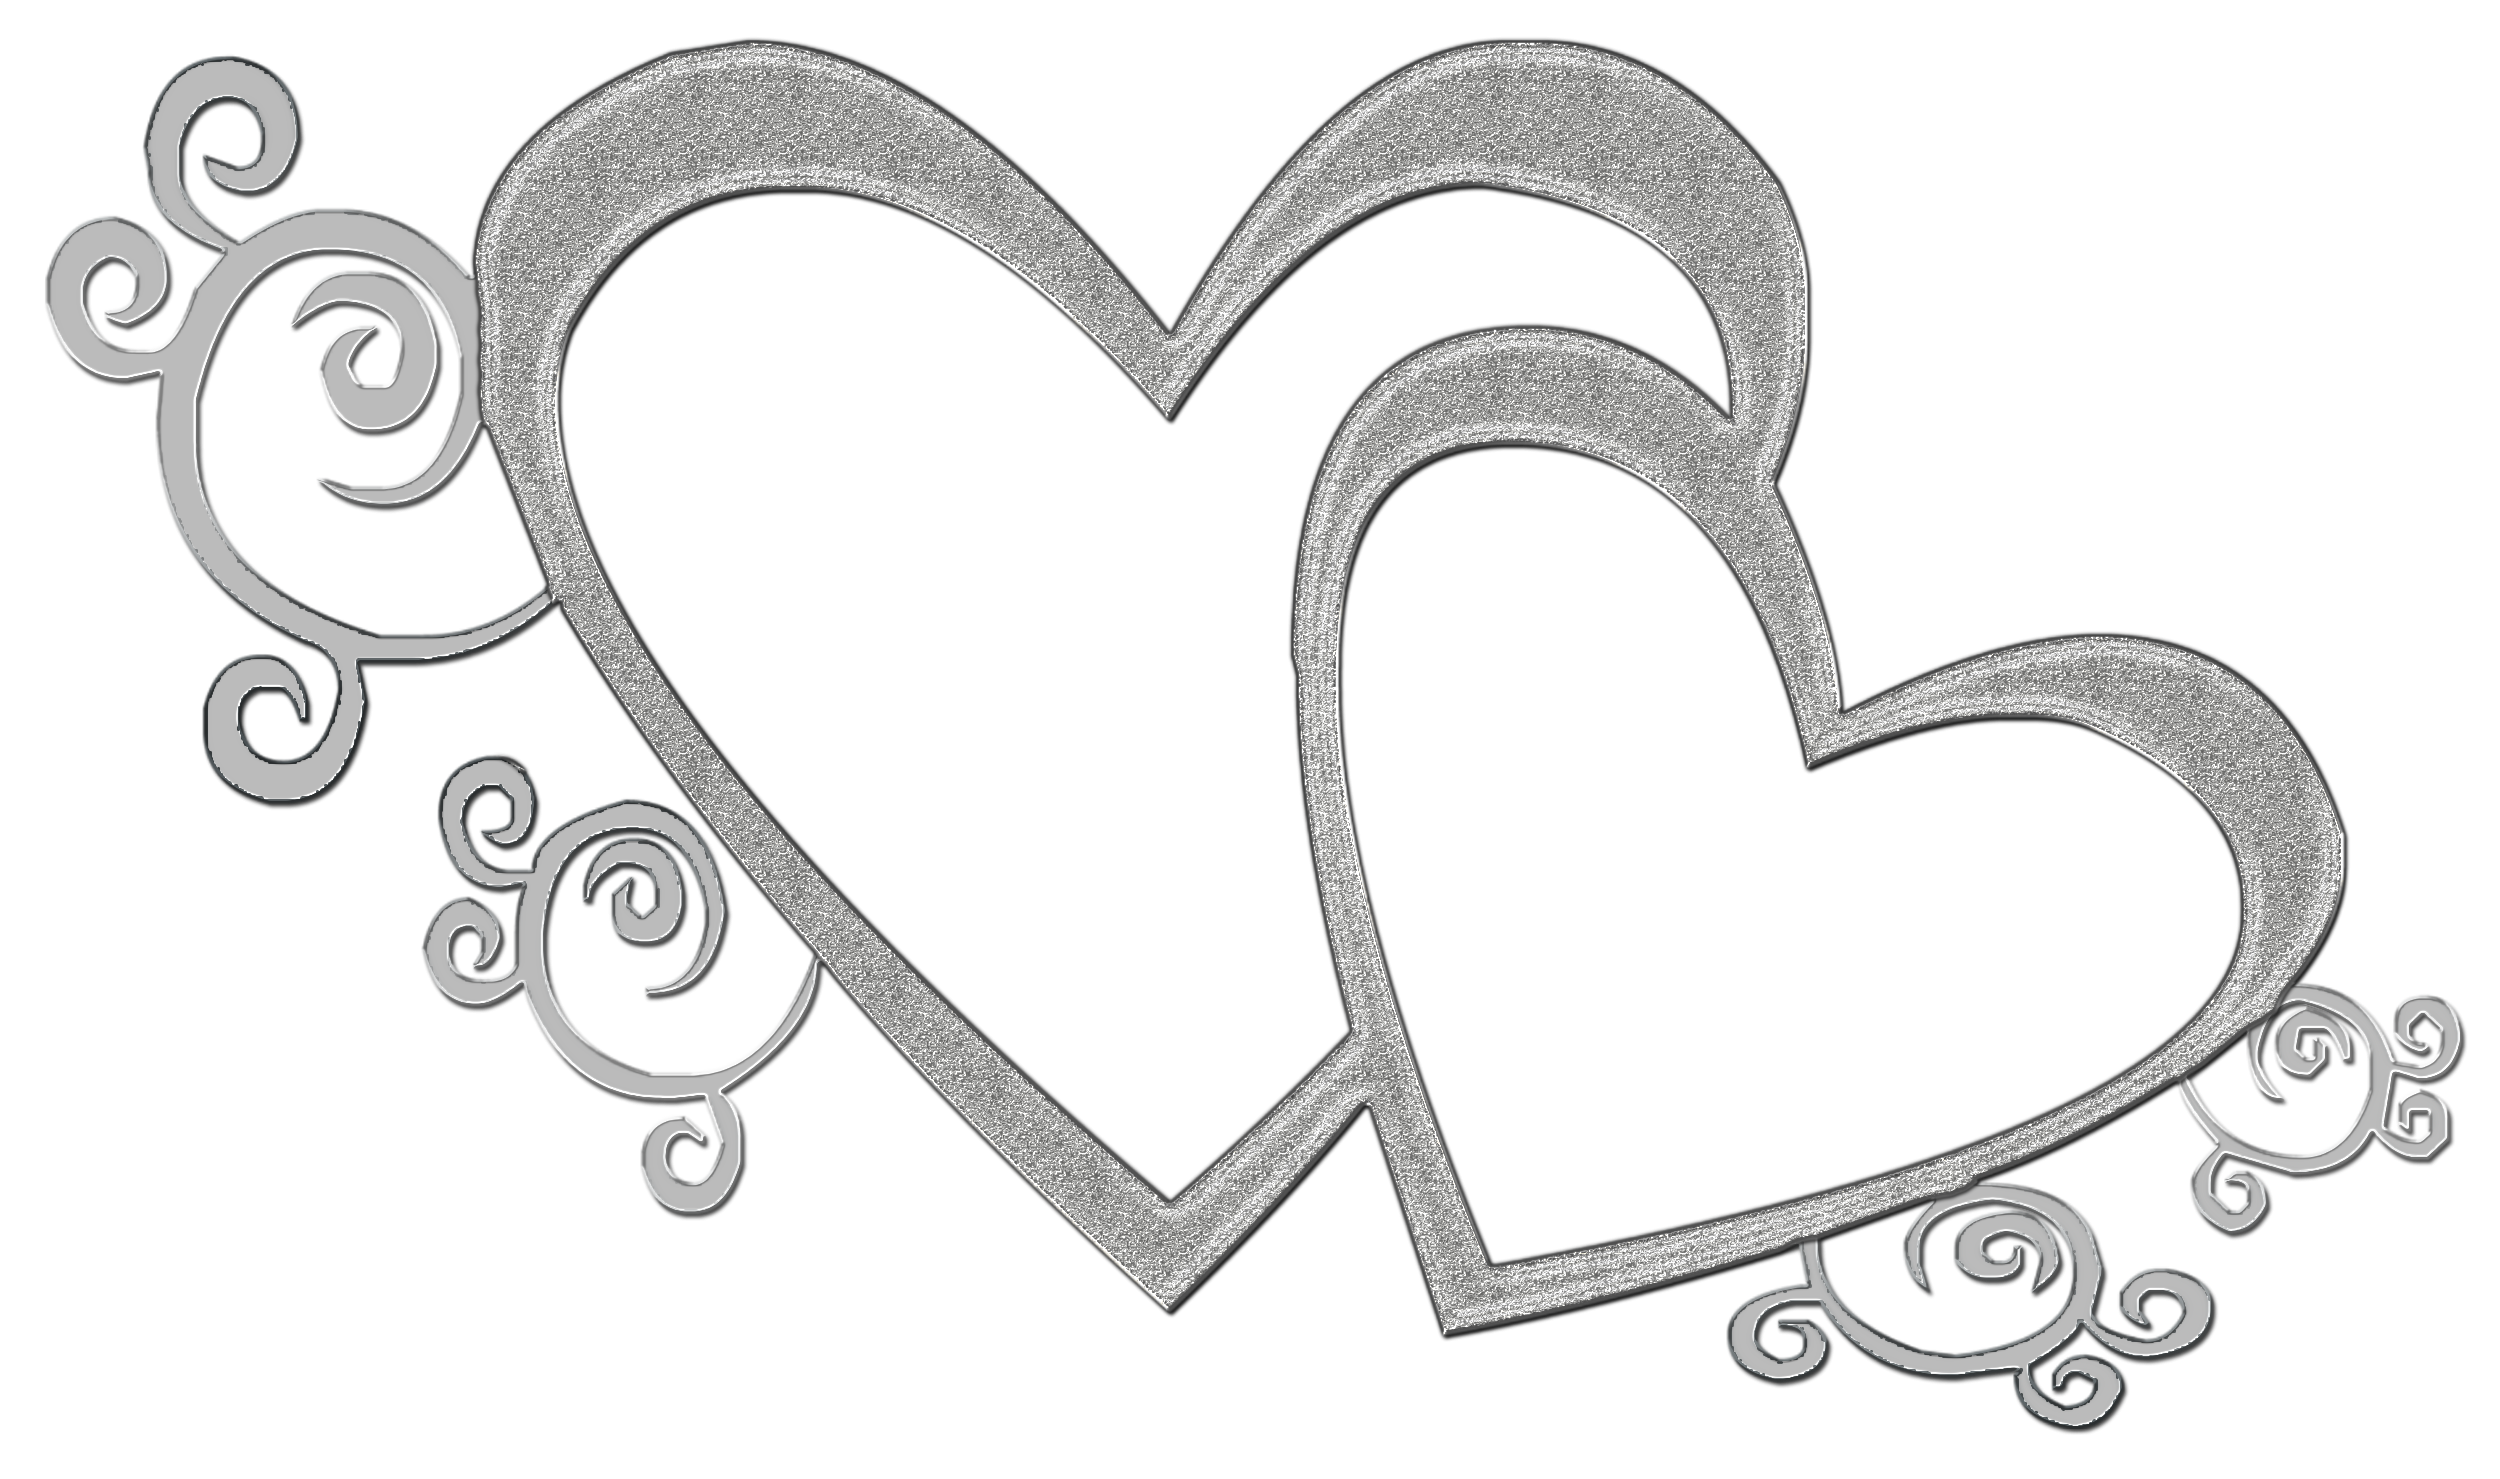 Fancy apple clipart clip free stock Heart black and white heart black and white heart clipart hearts 2 ... clip free stock